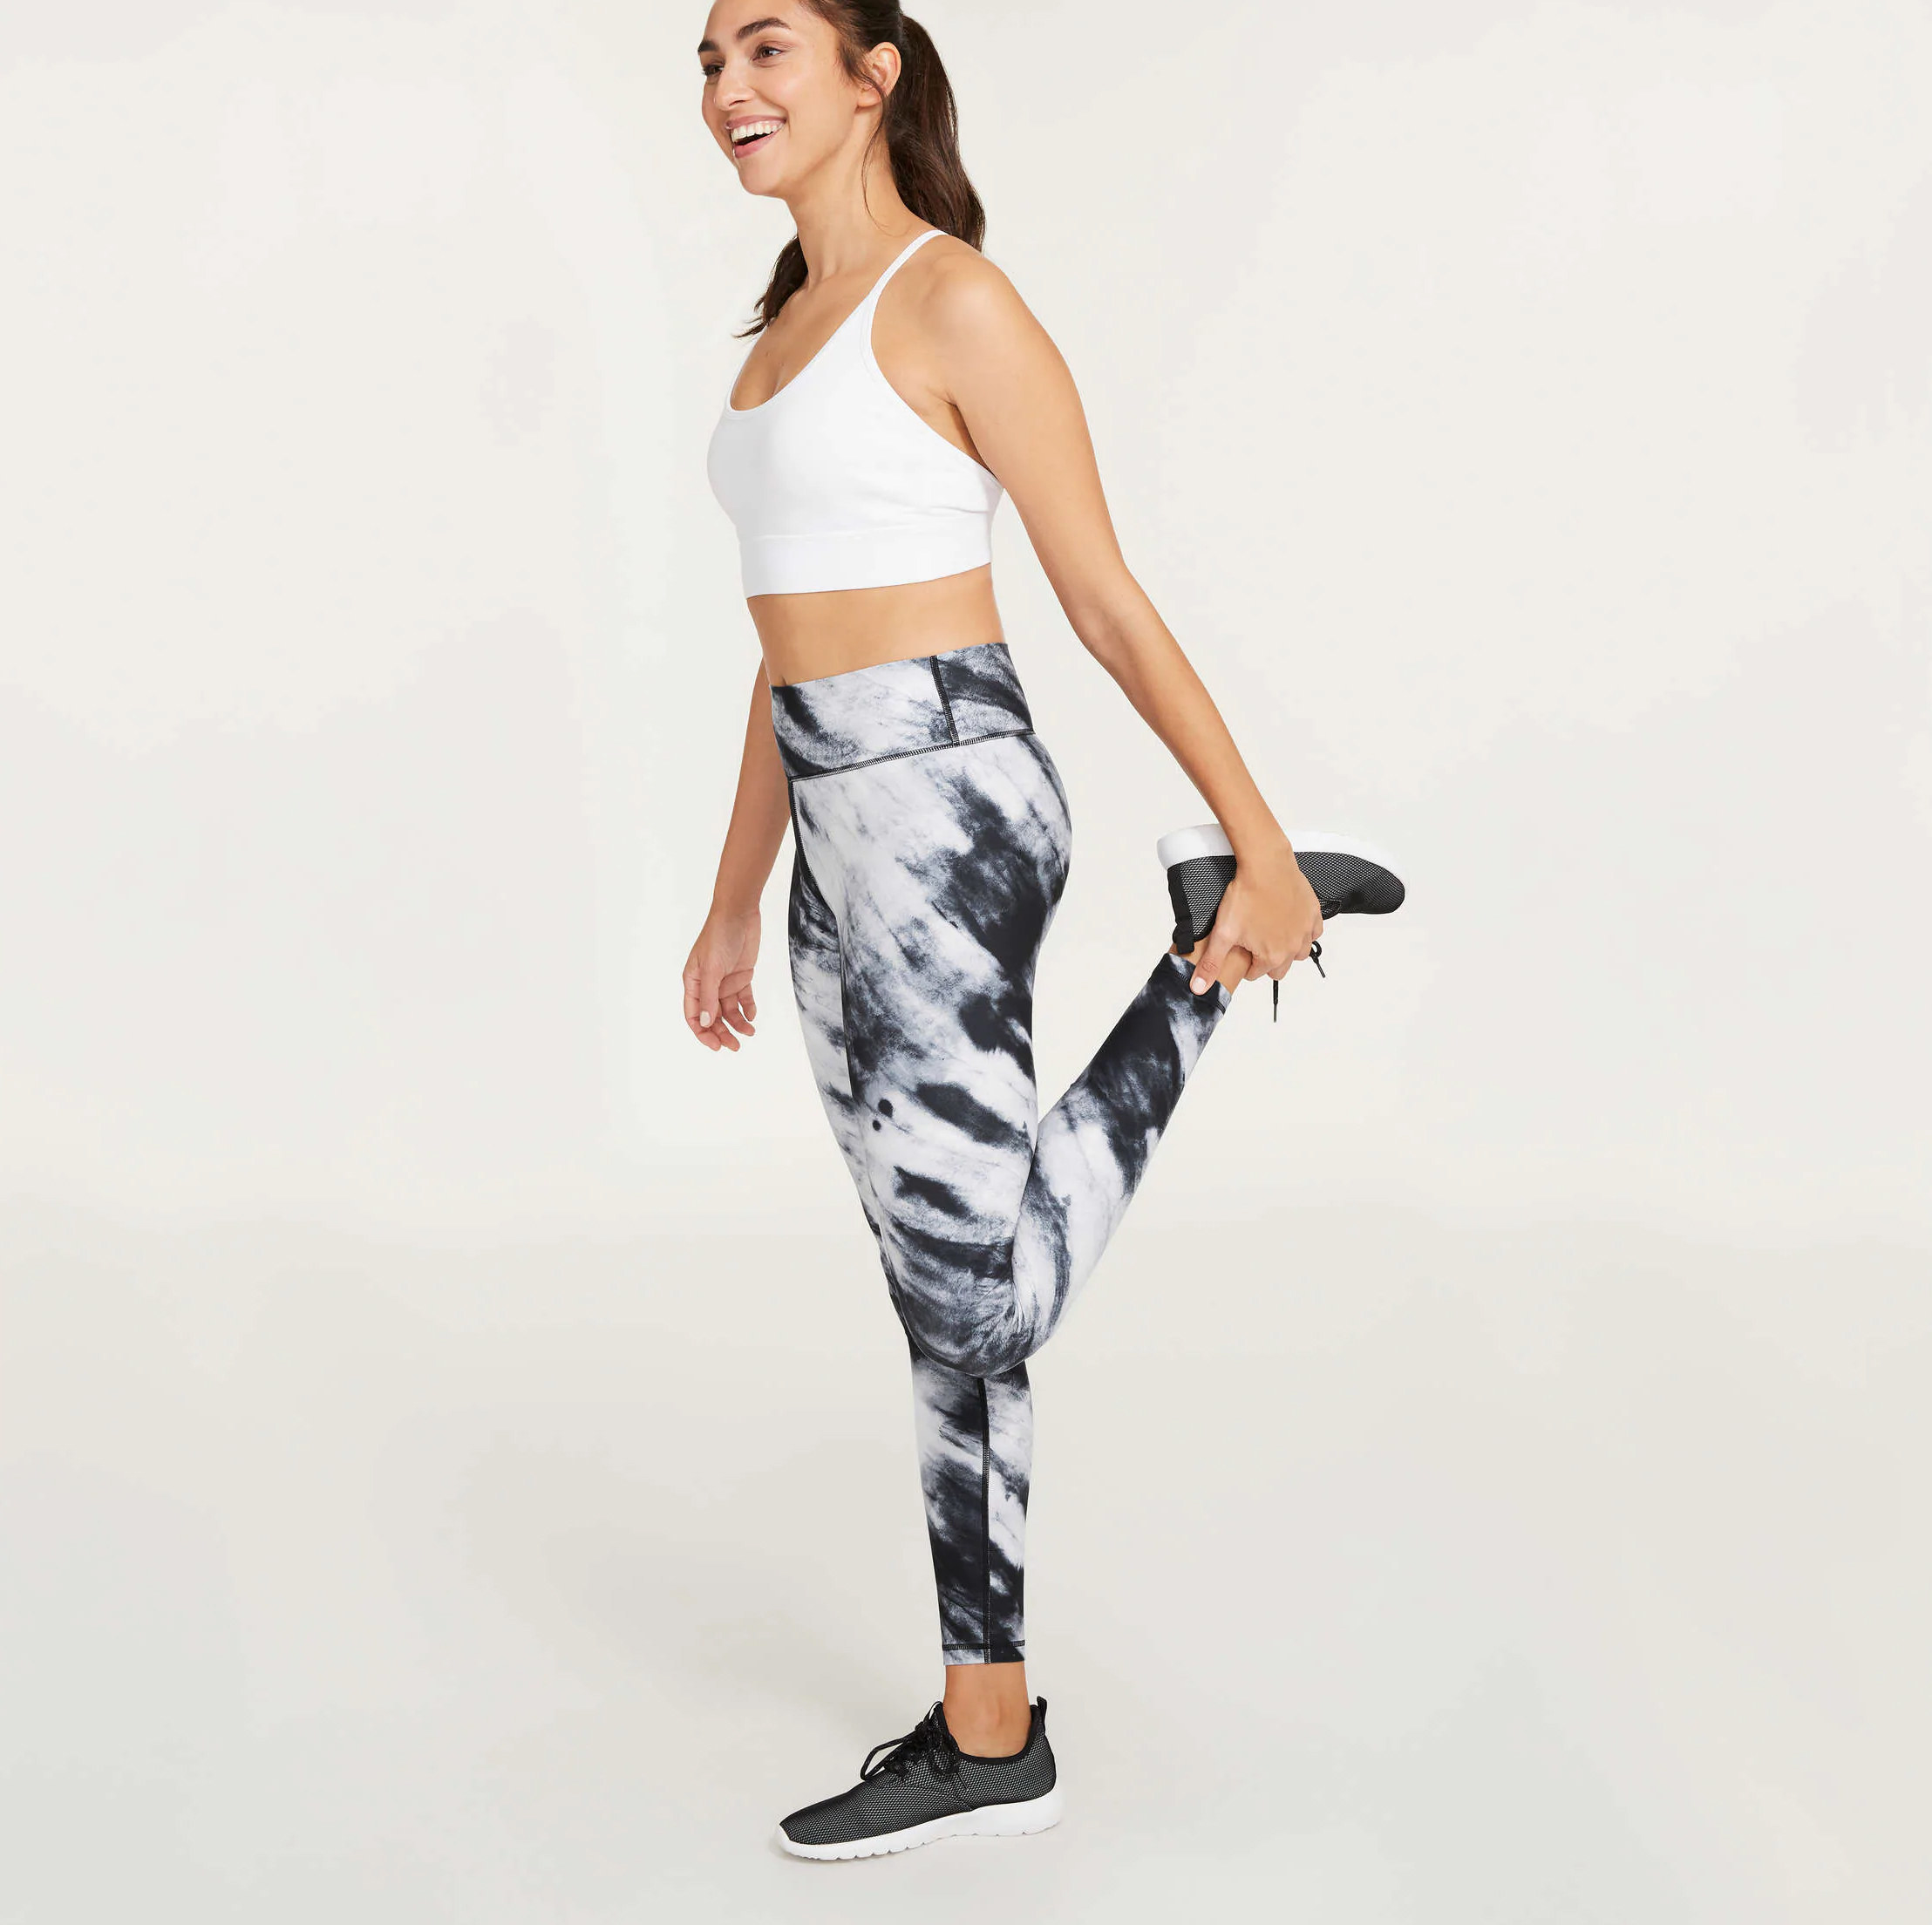 A person wearing a sports bra and patterned leggings